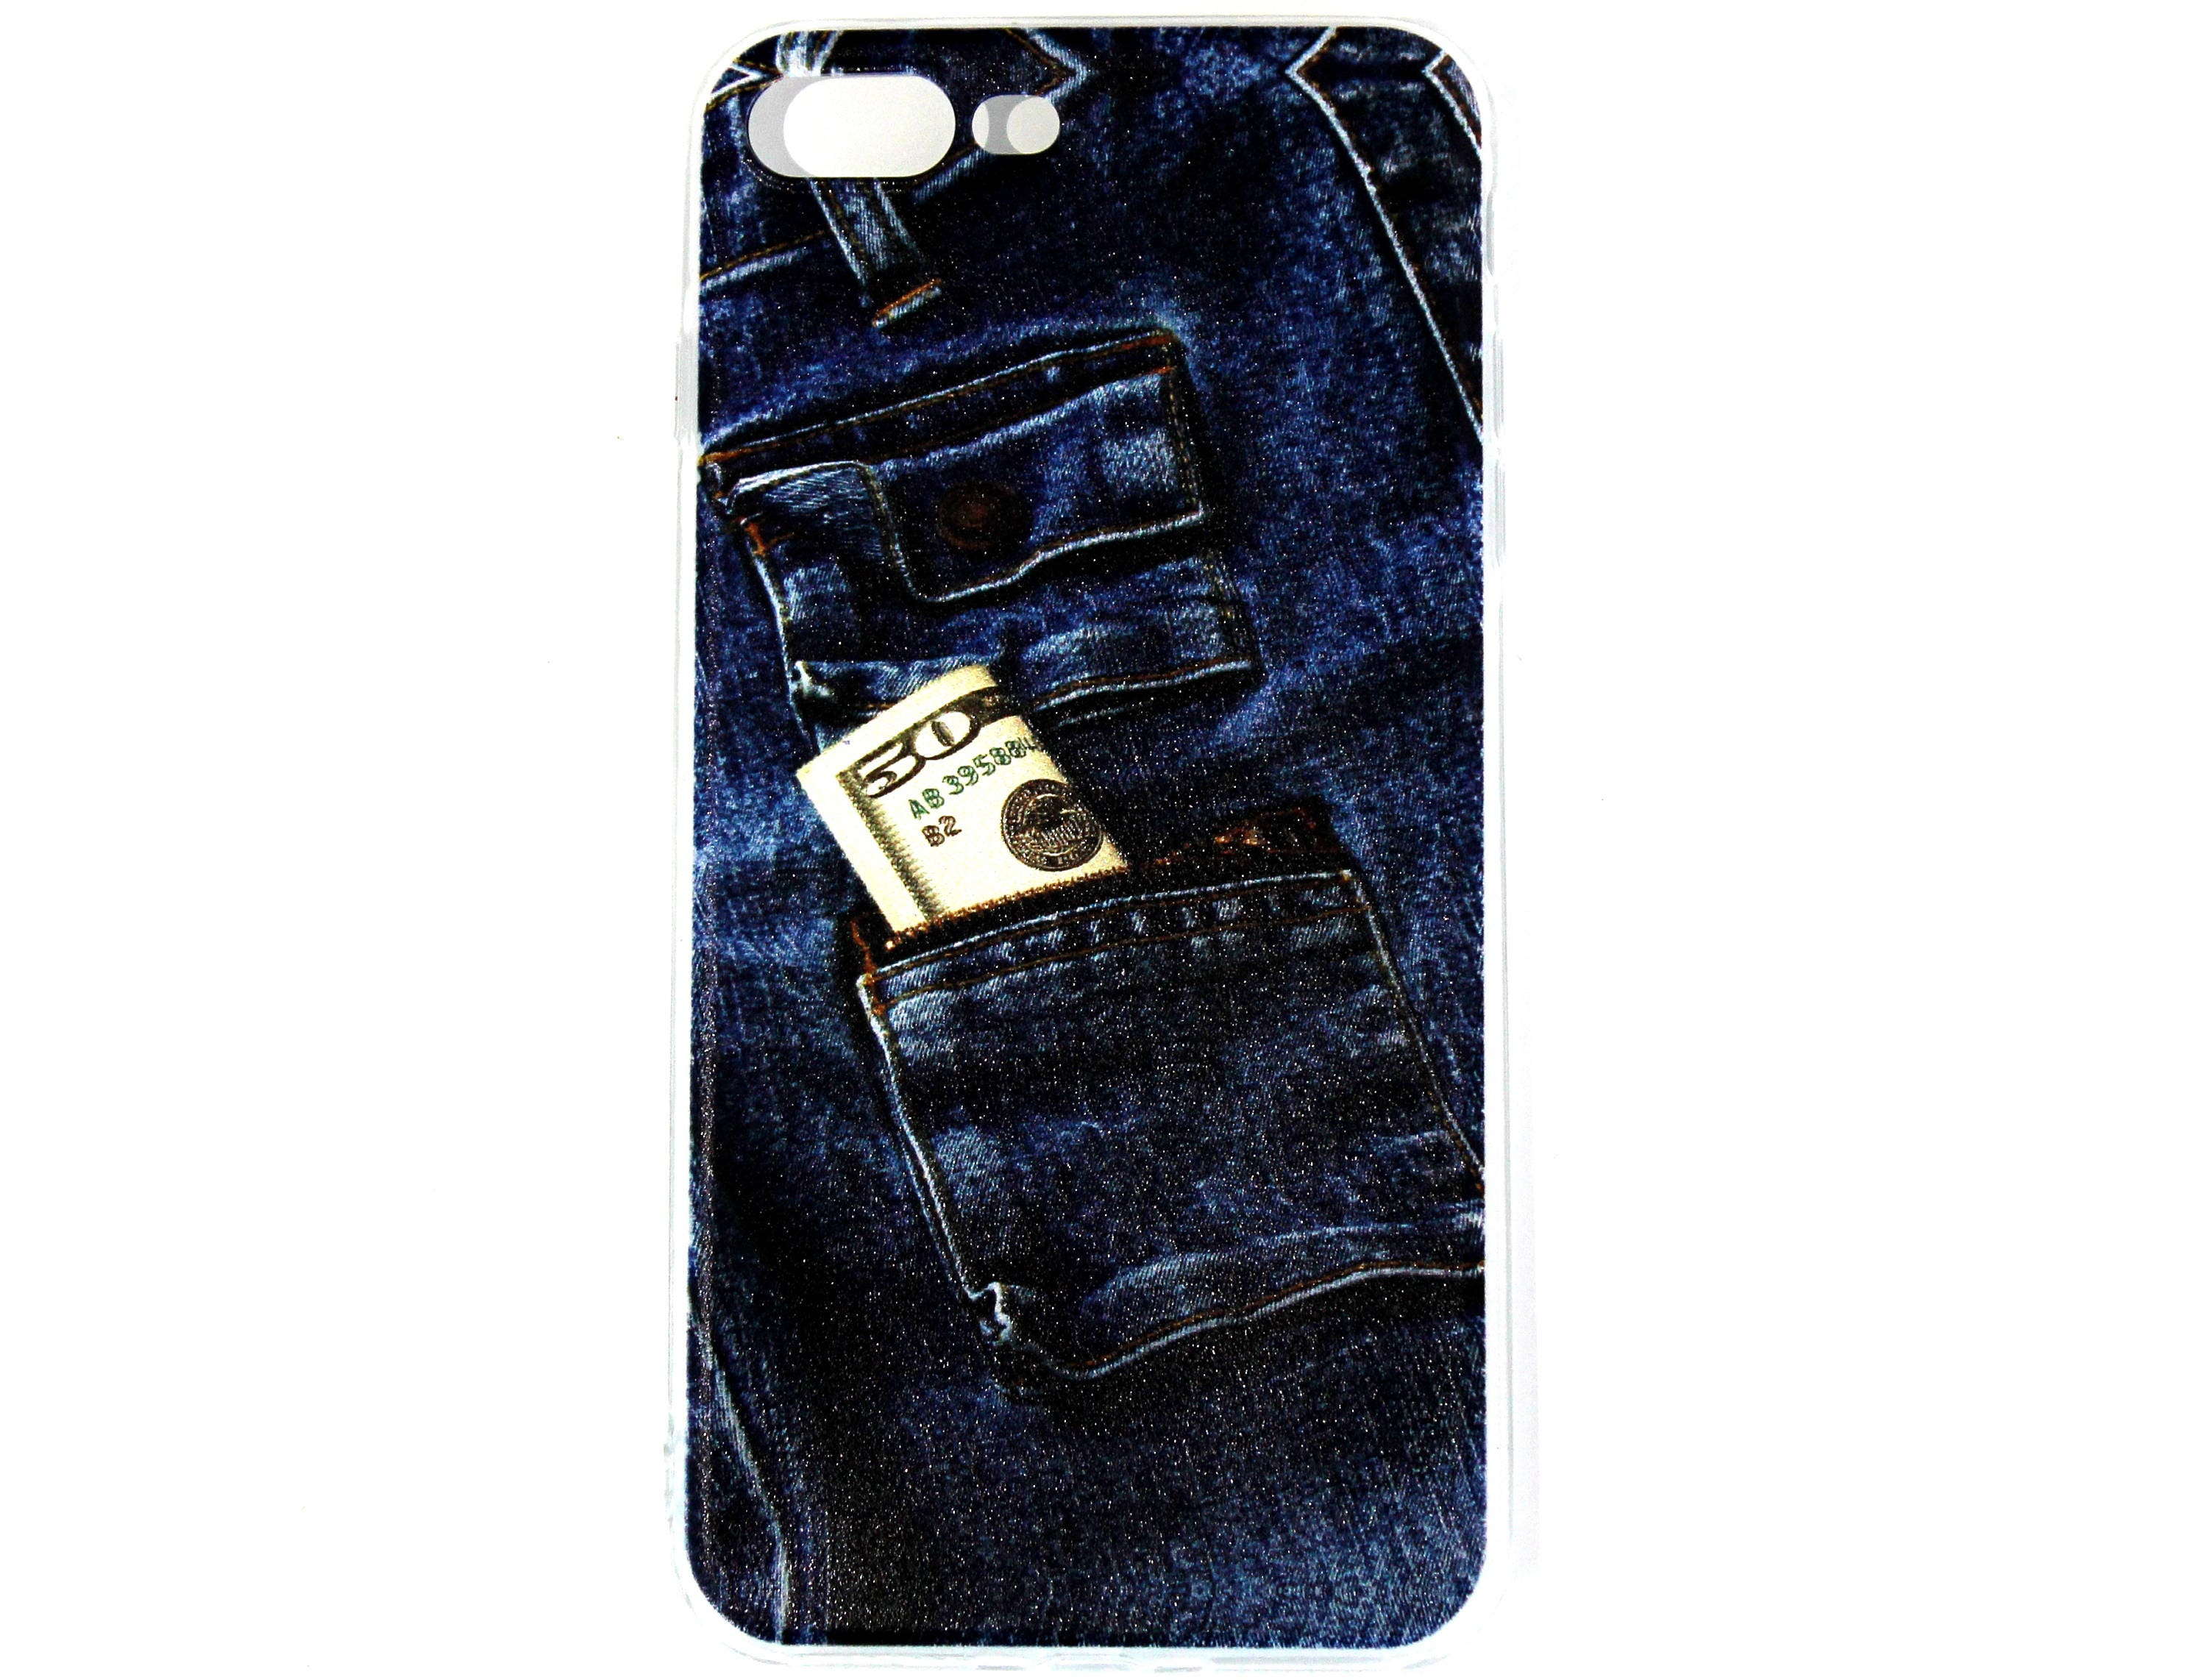 IPhone 7 Plus Soft Silicone Blue Jeans Cash Pattern Case Cell Phone Gift Under